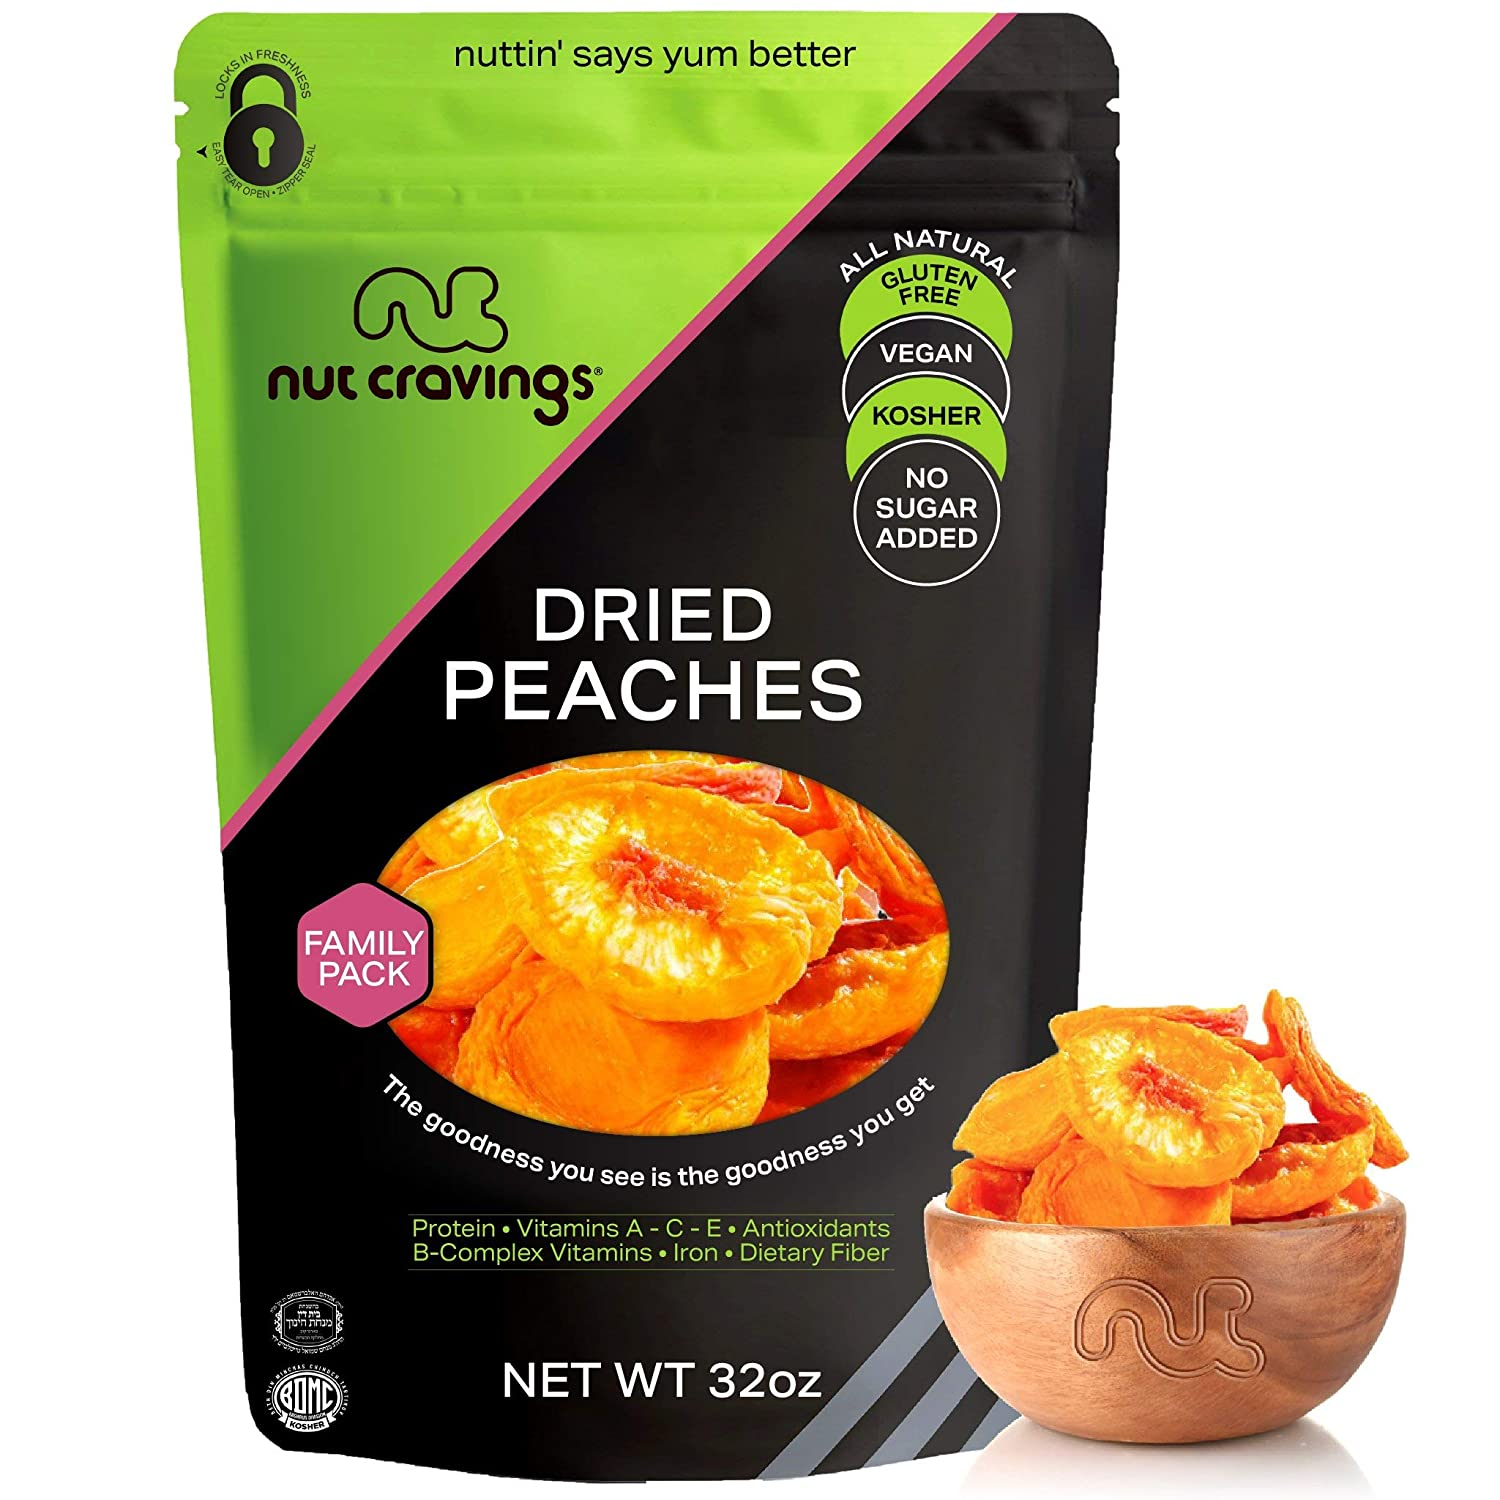 Sun Dried California Peaches, No Sugar Added (32oz - 2 Pound) Packed Fresh in Resealable Bag - Sweet Dehydrated Fruit Treat, Trail Mix Snack - Healthy Food, All Natural, Vegan, Gluten Free, Kosher